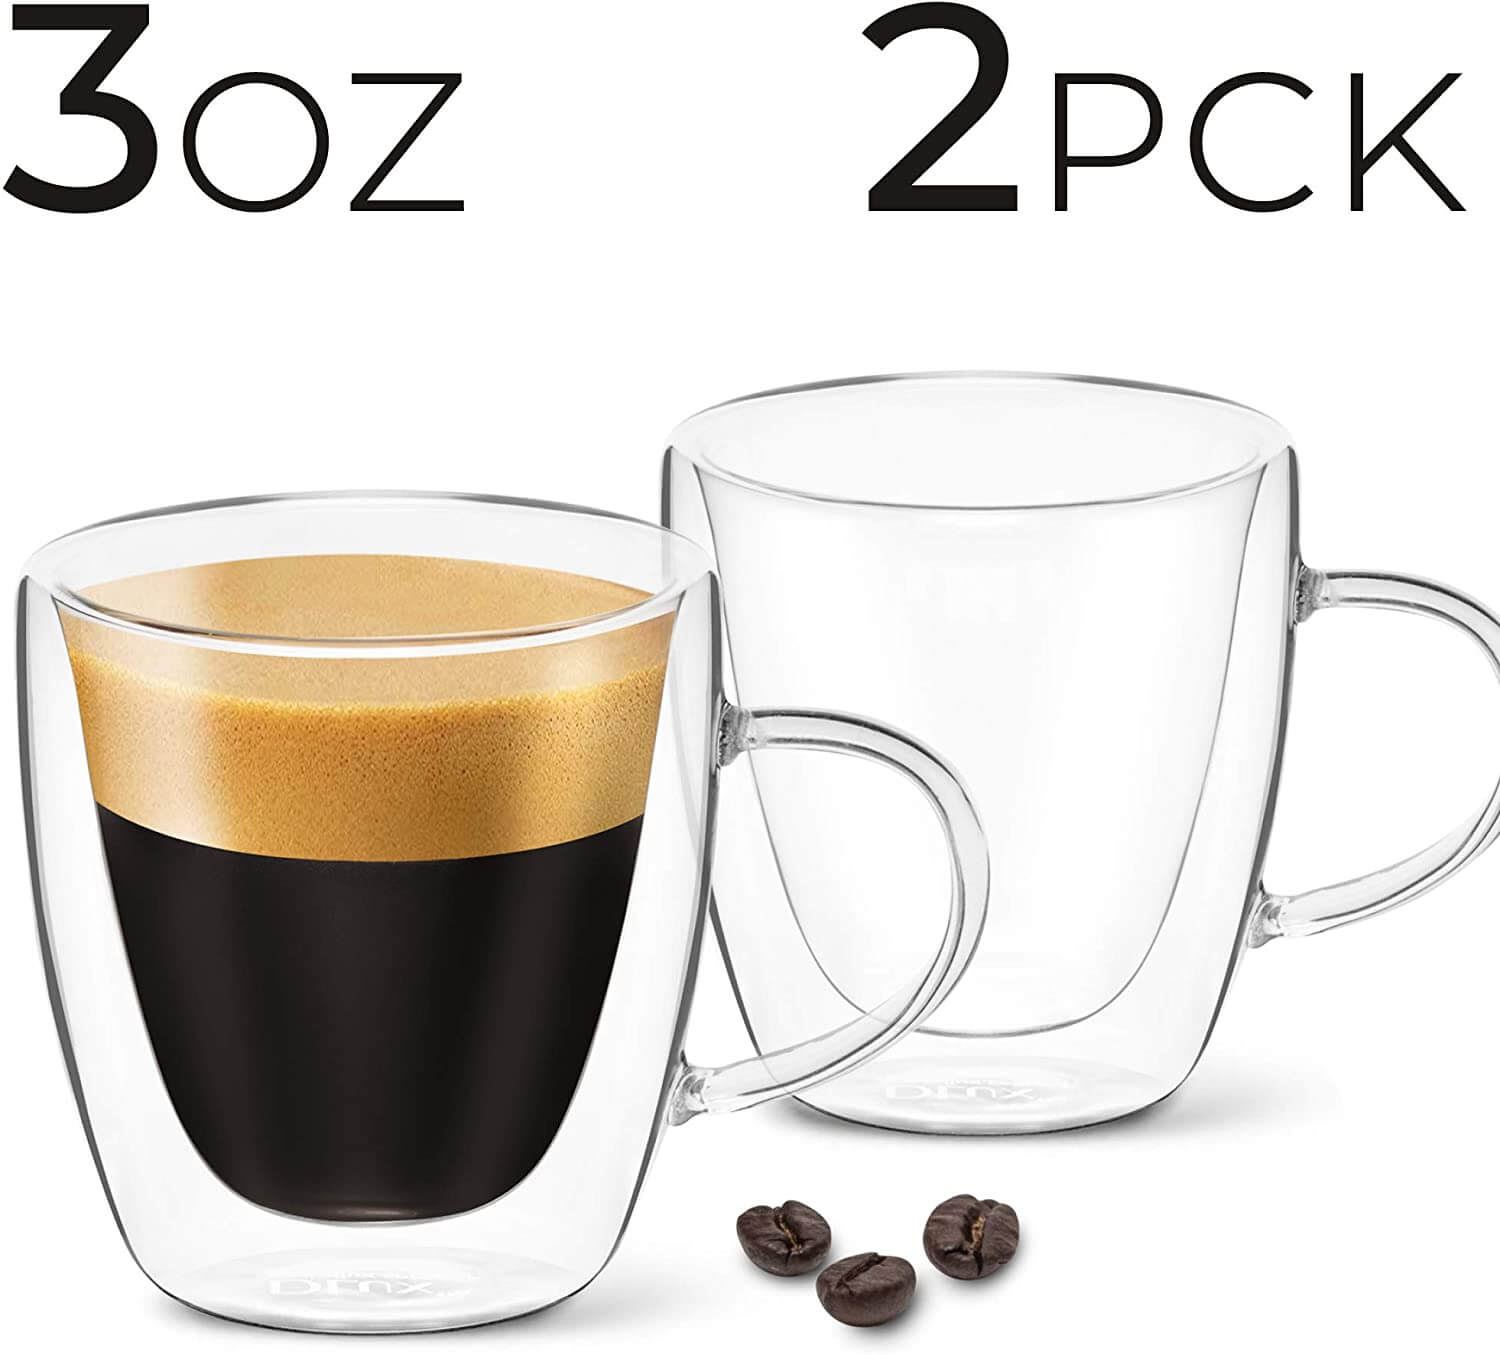 DLux Double-Wall Clear Glass Espresso Cups